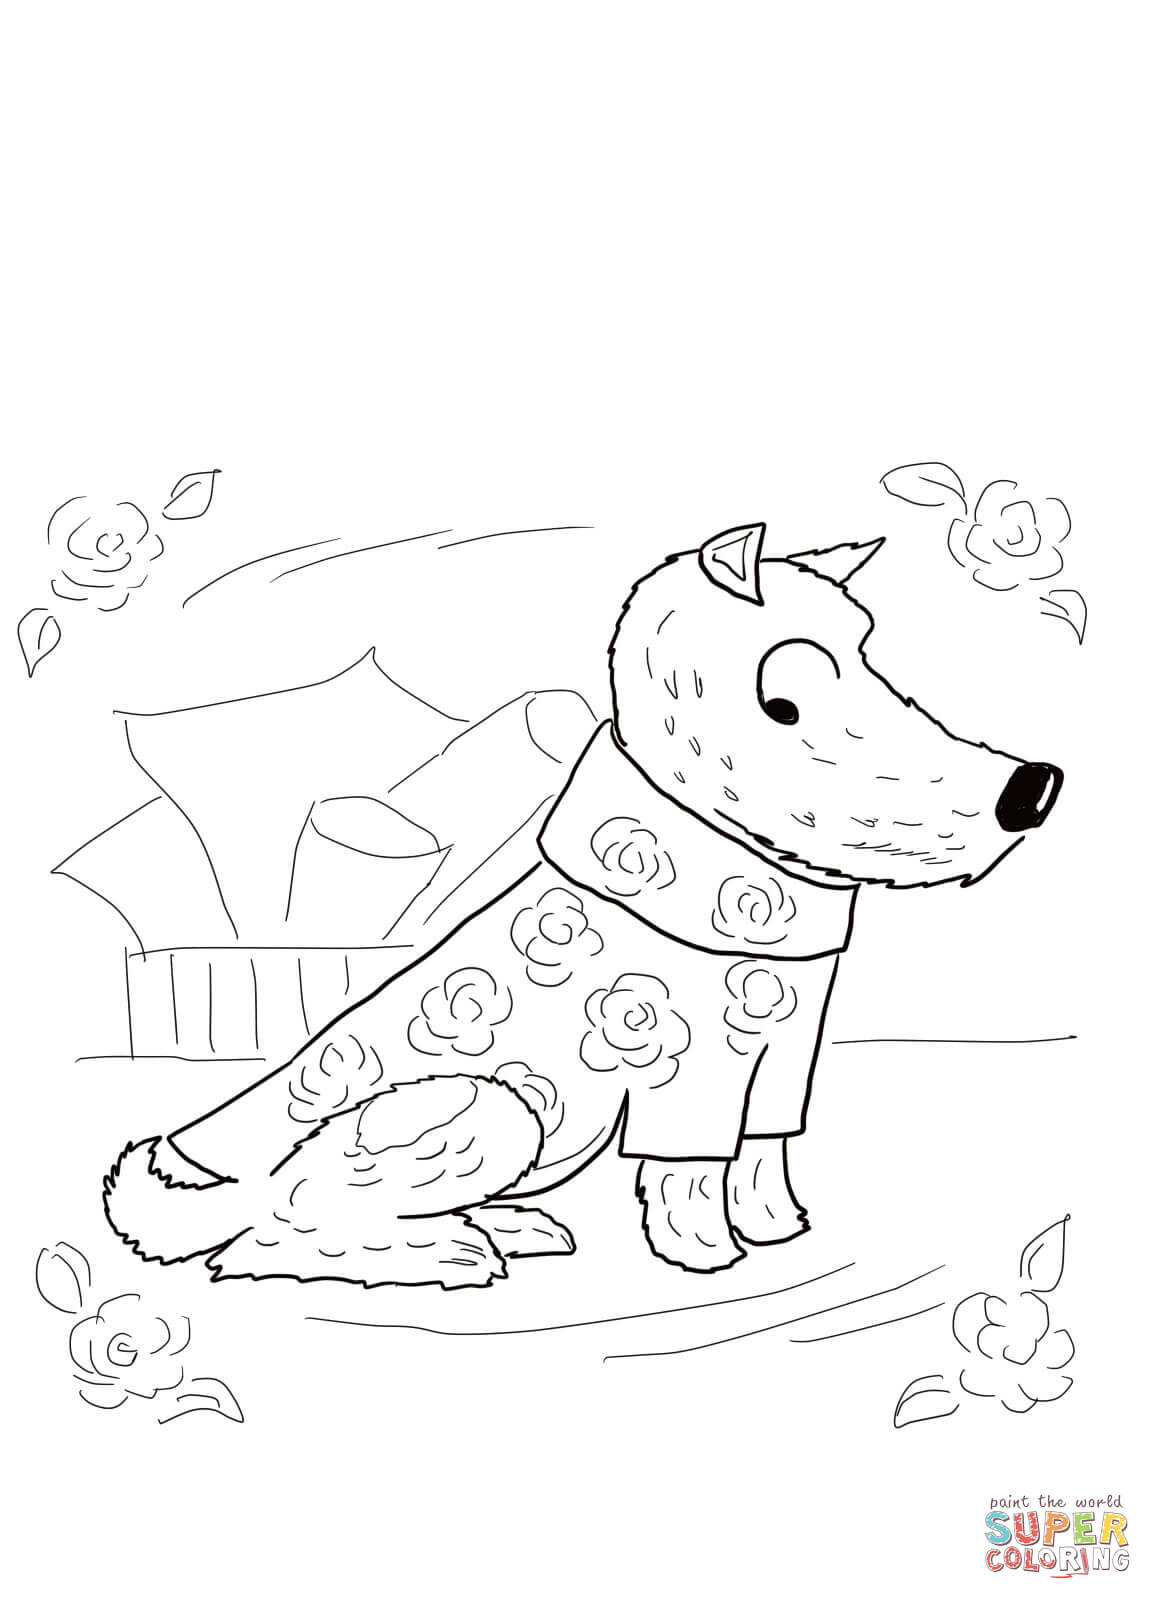 No Roses For Harry Coloring Page